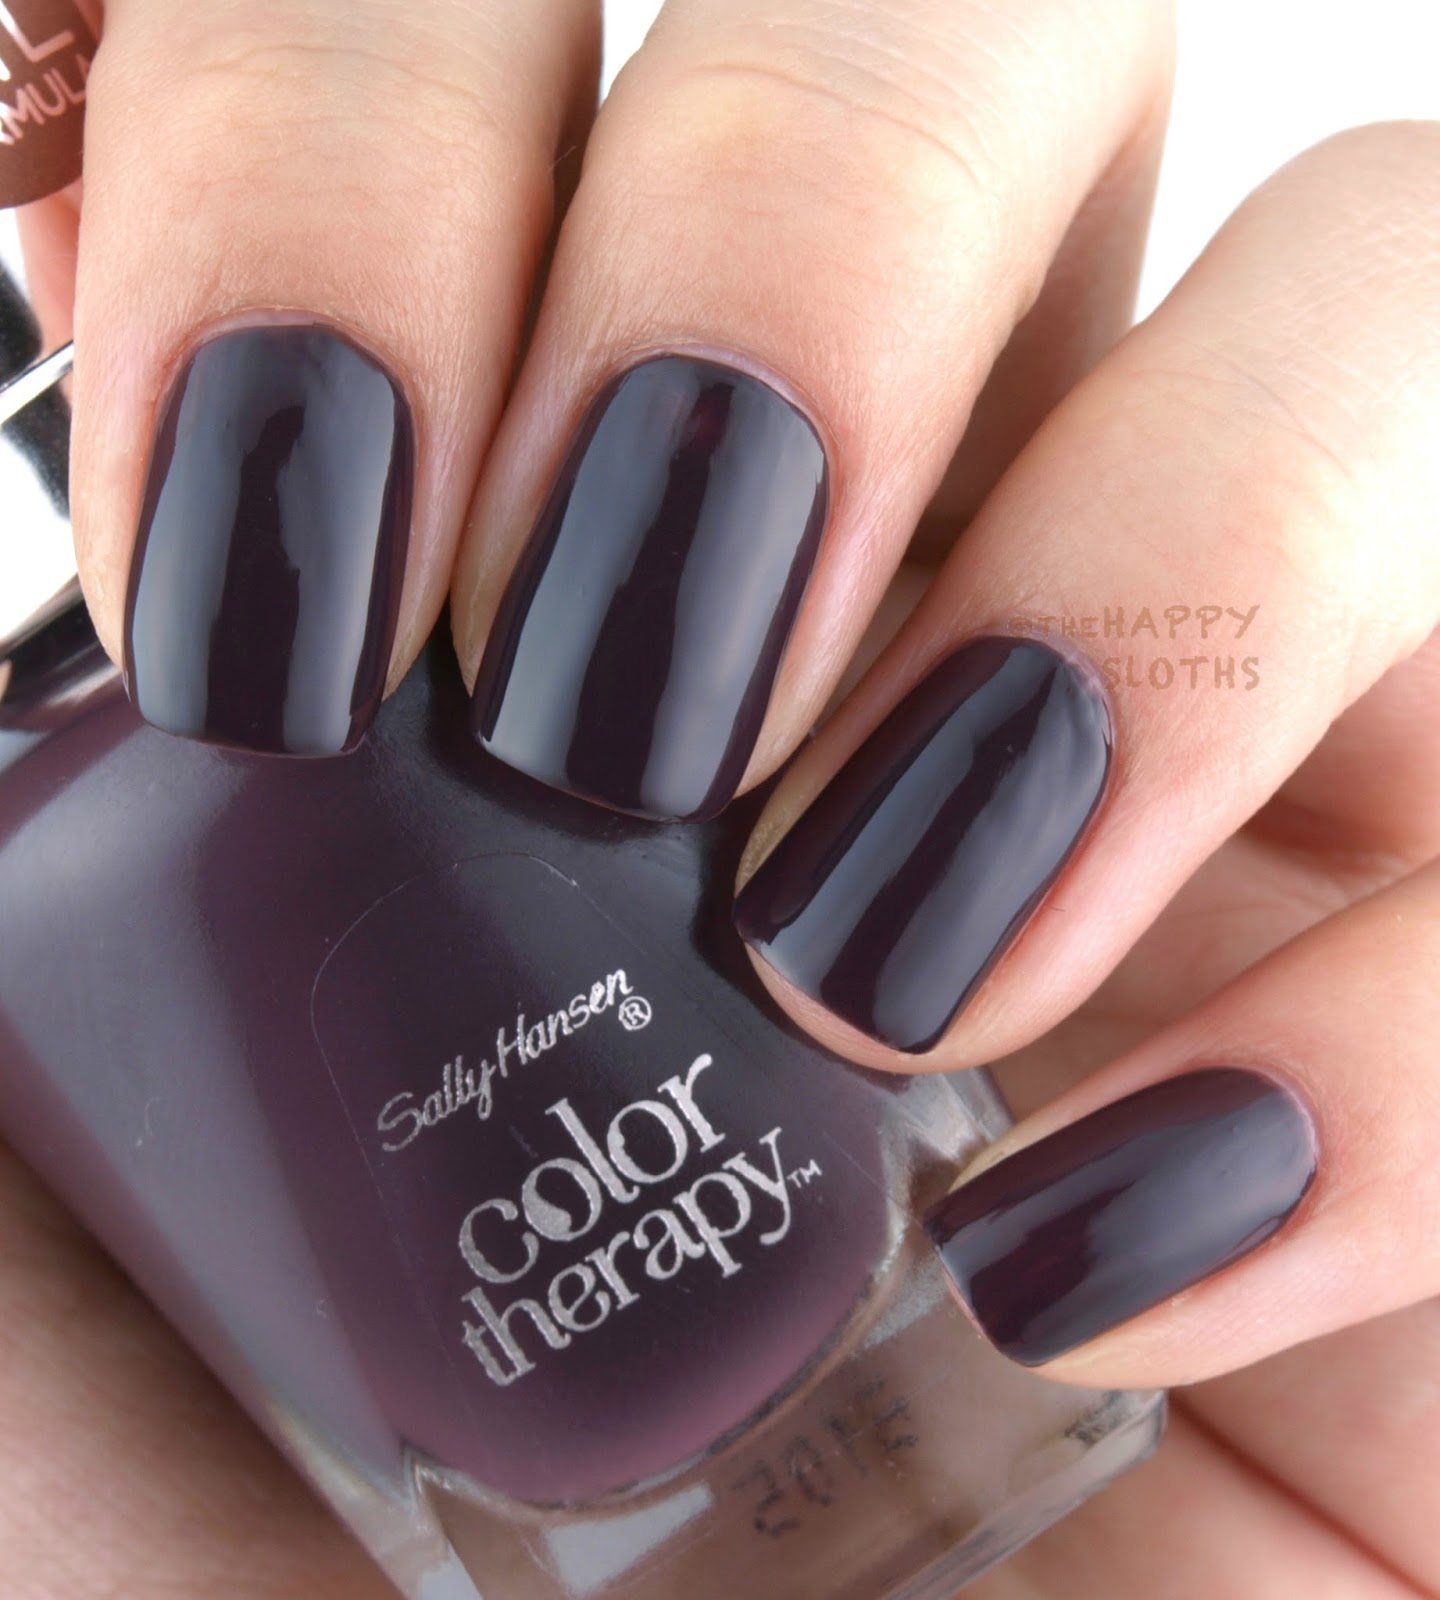 Colour therapy for stomach - A Deep Inky Mauve Purple Exotic Acai Is Another Disappointingly Sheer Color The Second Coat Mostly Covered Things Up But For A Shade This Dark